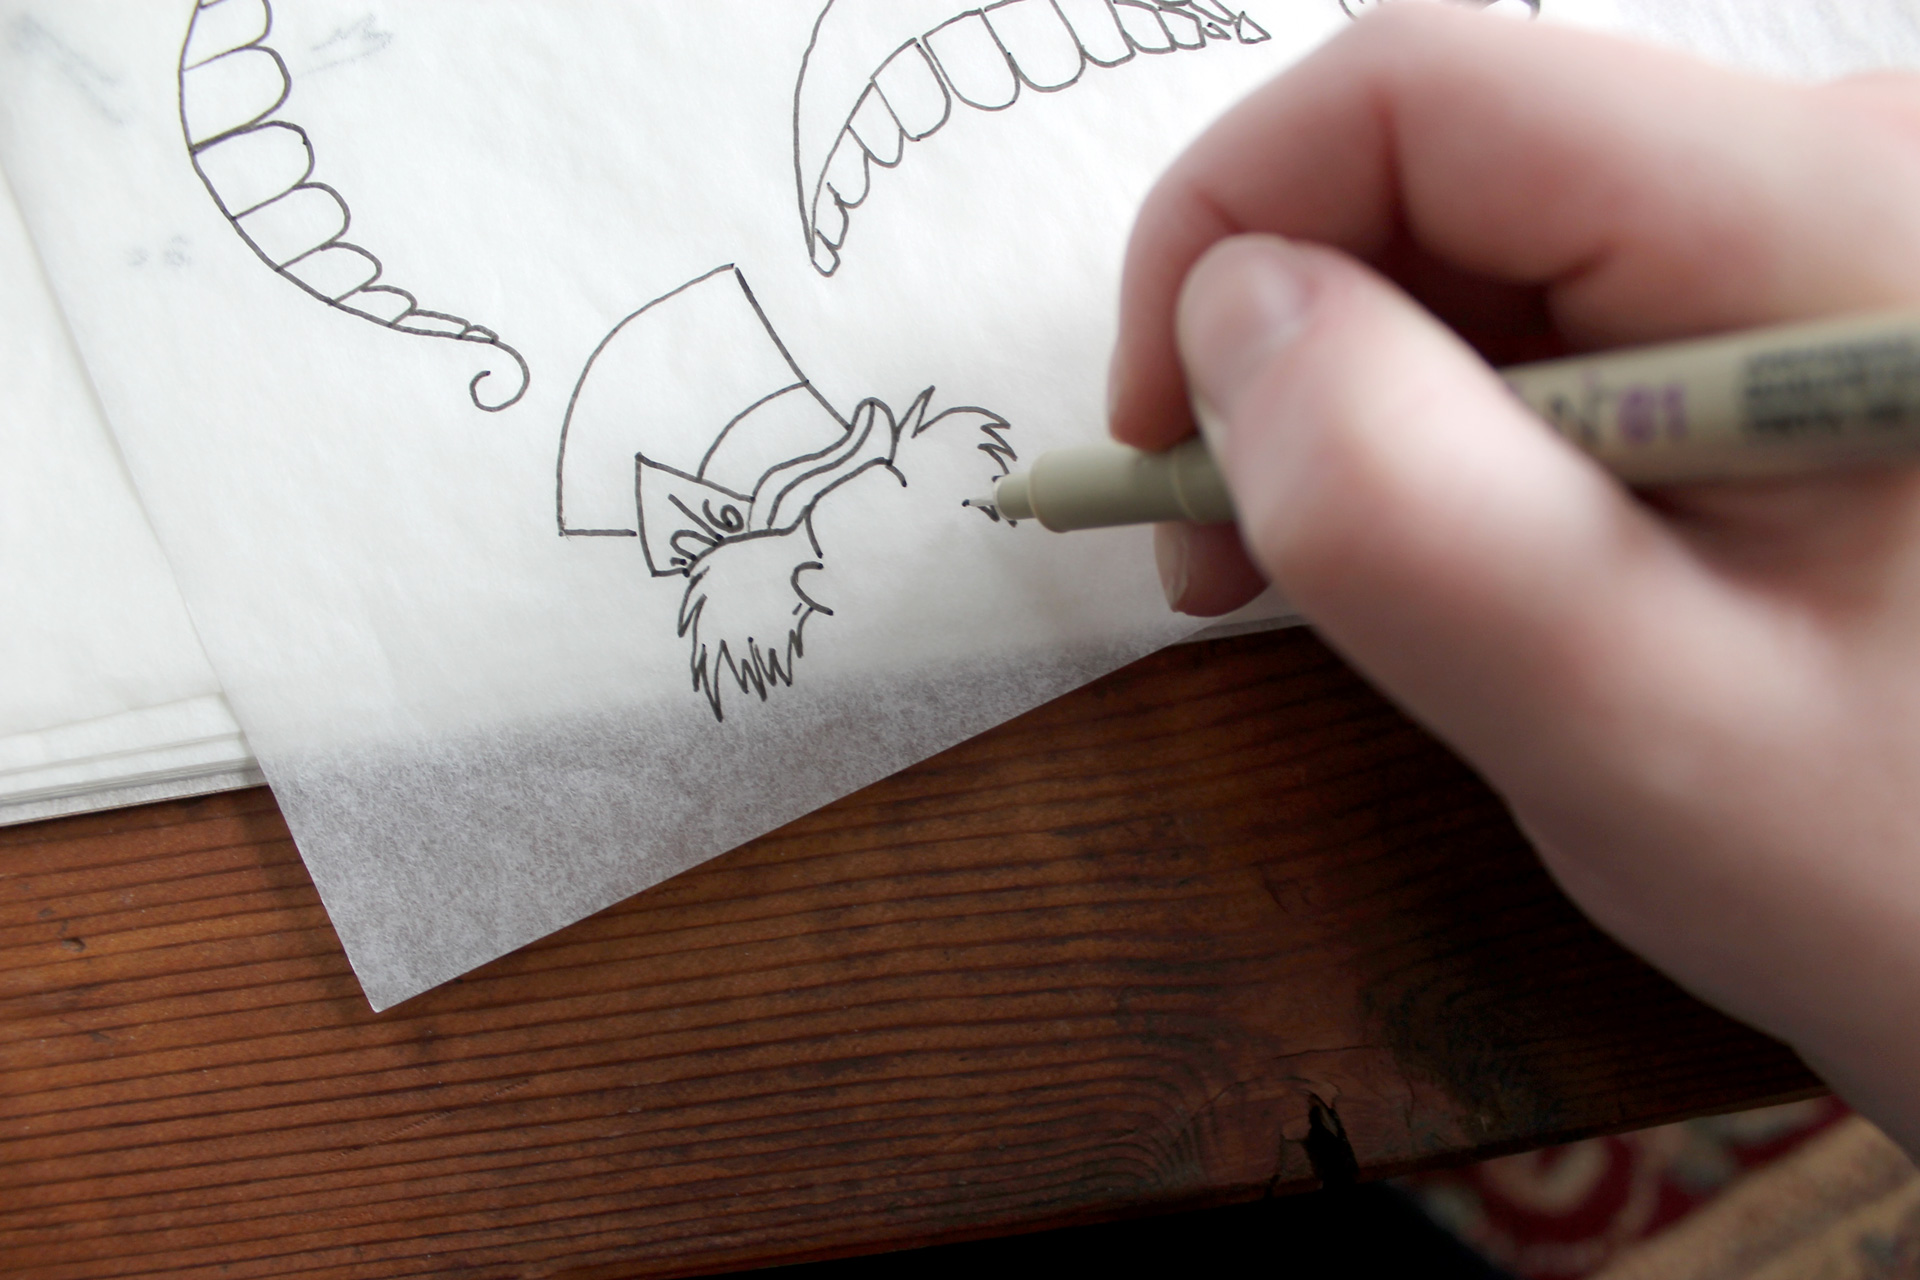 Close-up of hand drawing Mad Hatter illustration on tracing paper atop a wooden table